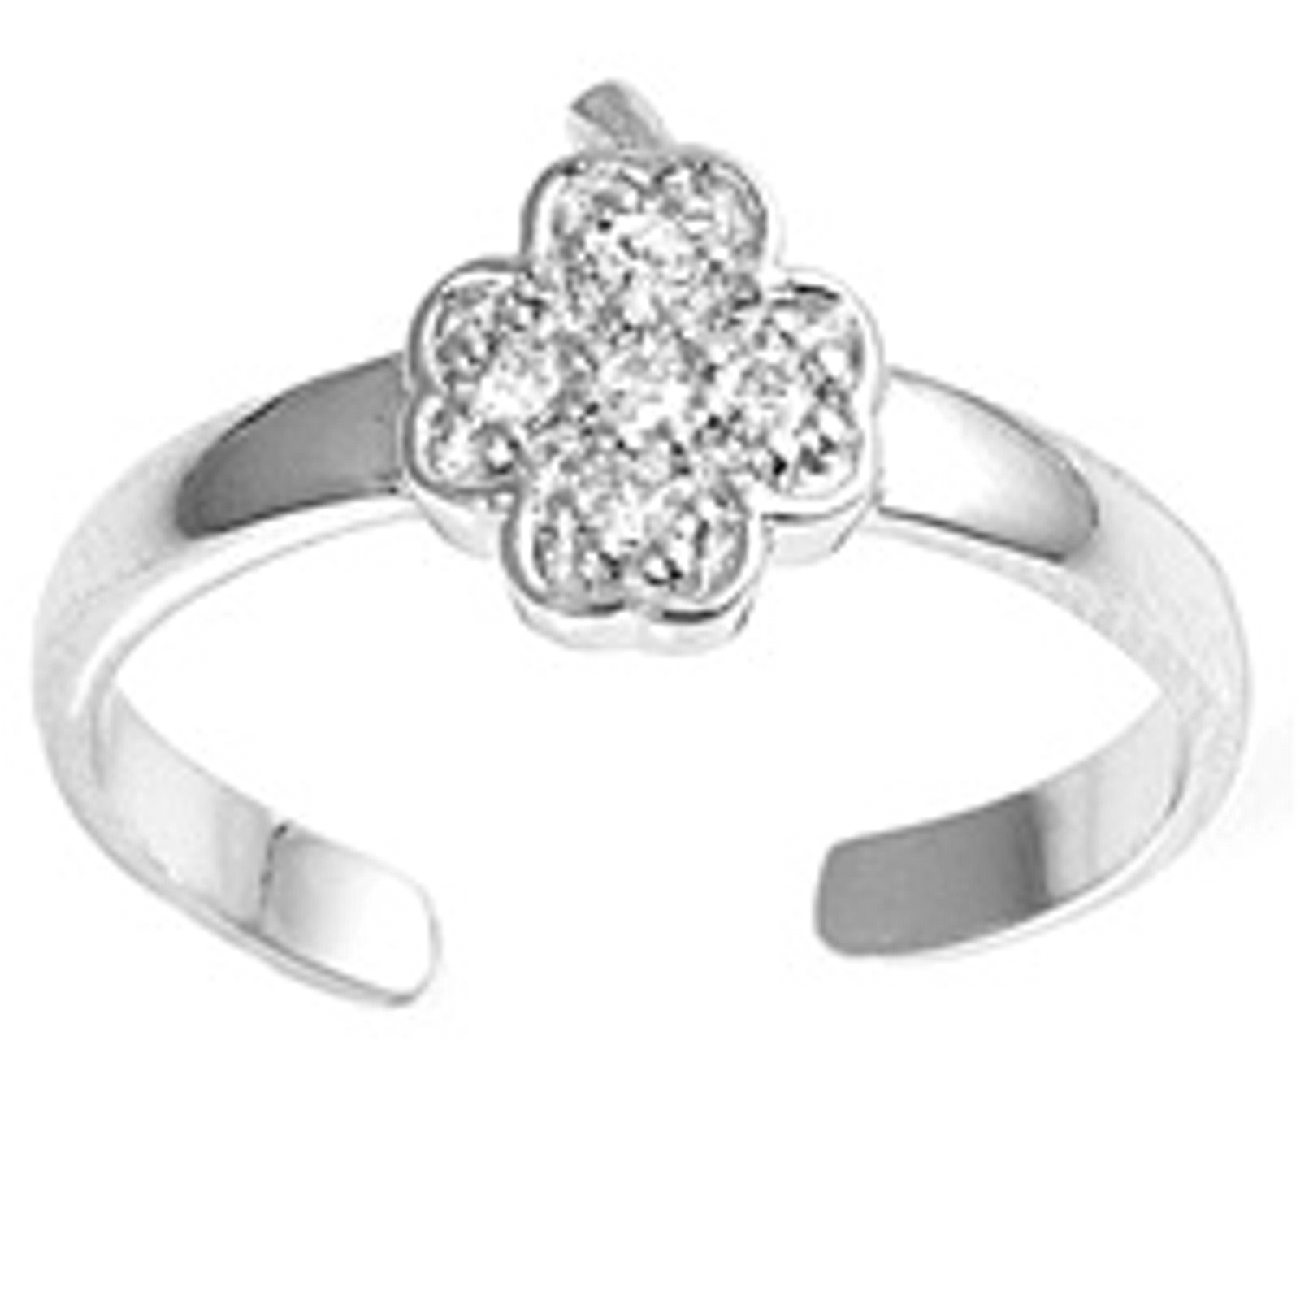 Clear Cubic Zirconia Stones Four Leaf Clover Adjustable Toe Ring